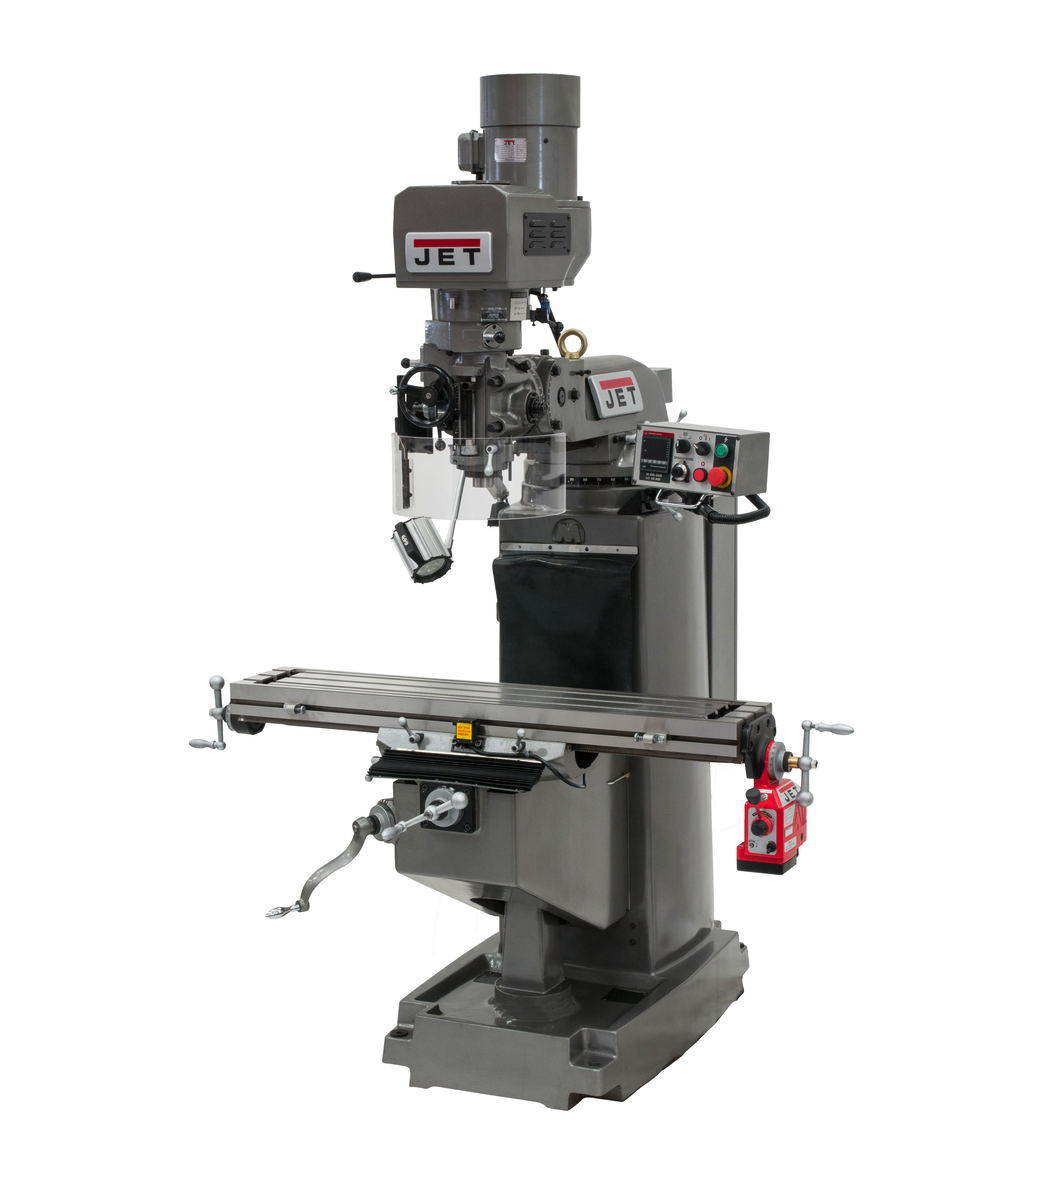 JTM-1050EVS2/230 Mill With 2-Axis Acu-Rite MilPwr G2 CNC Controller and Air Powered Draw Bar